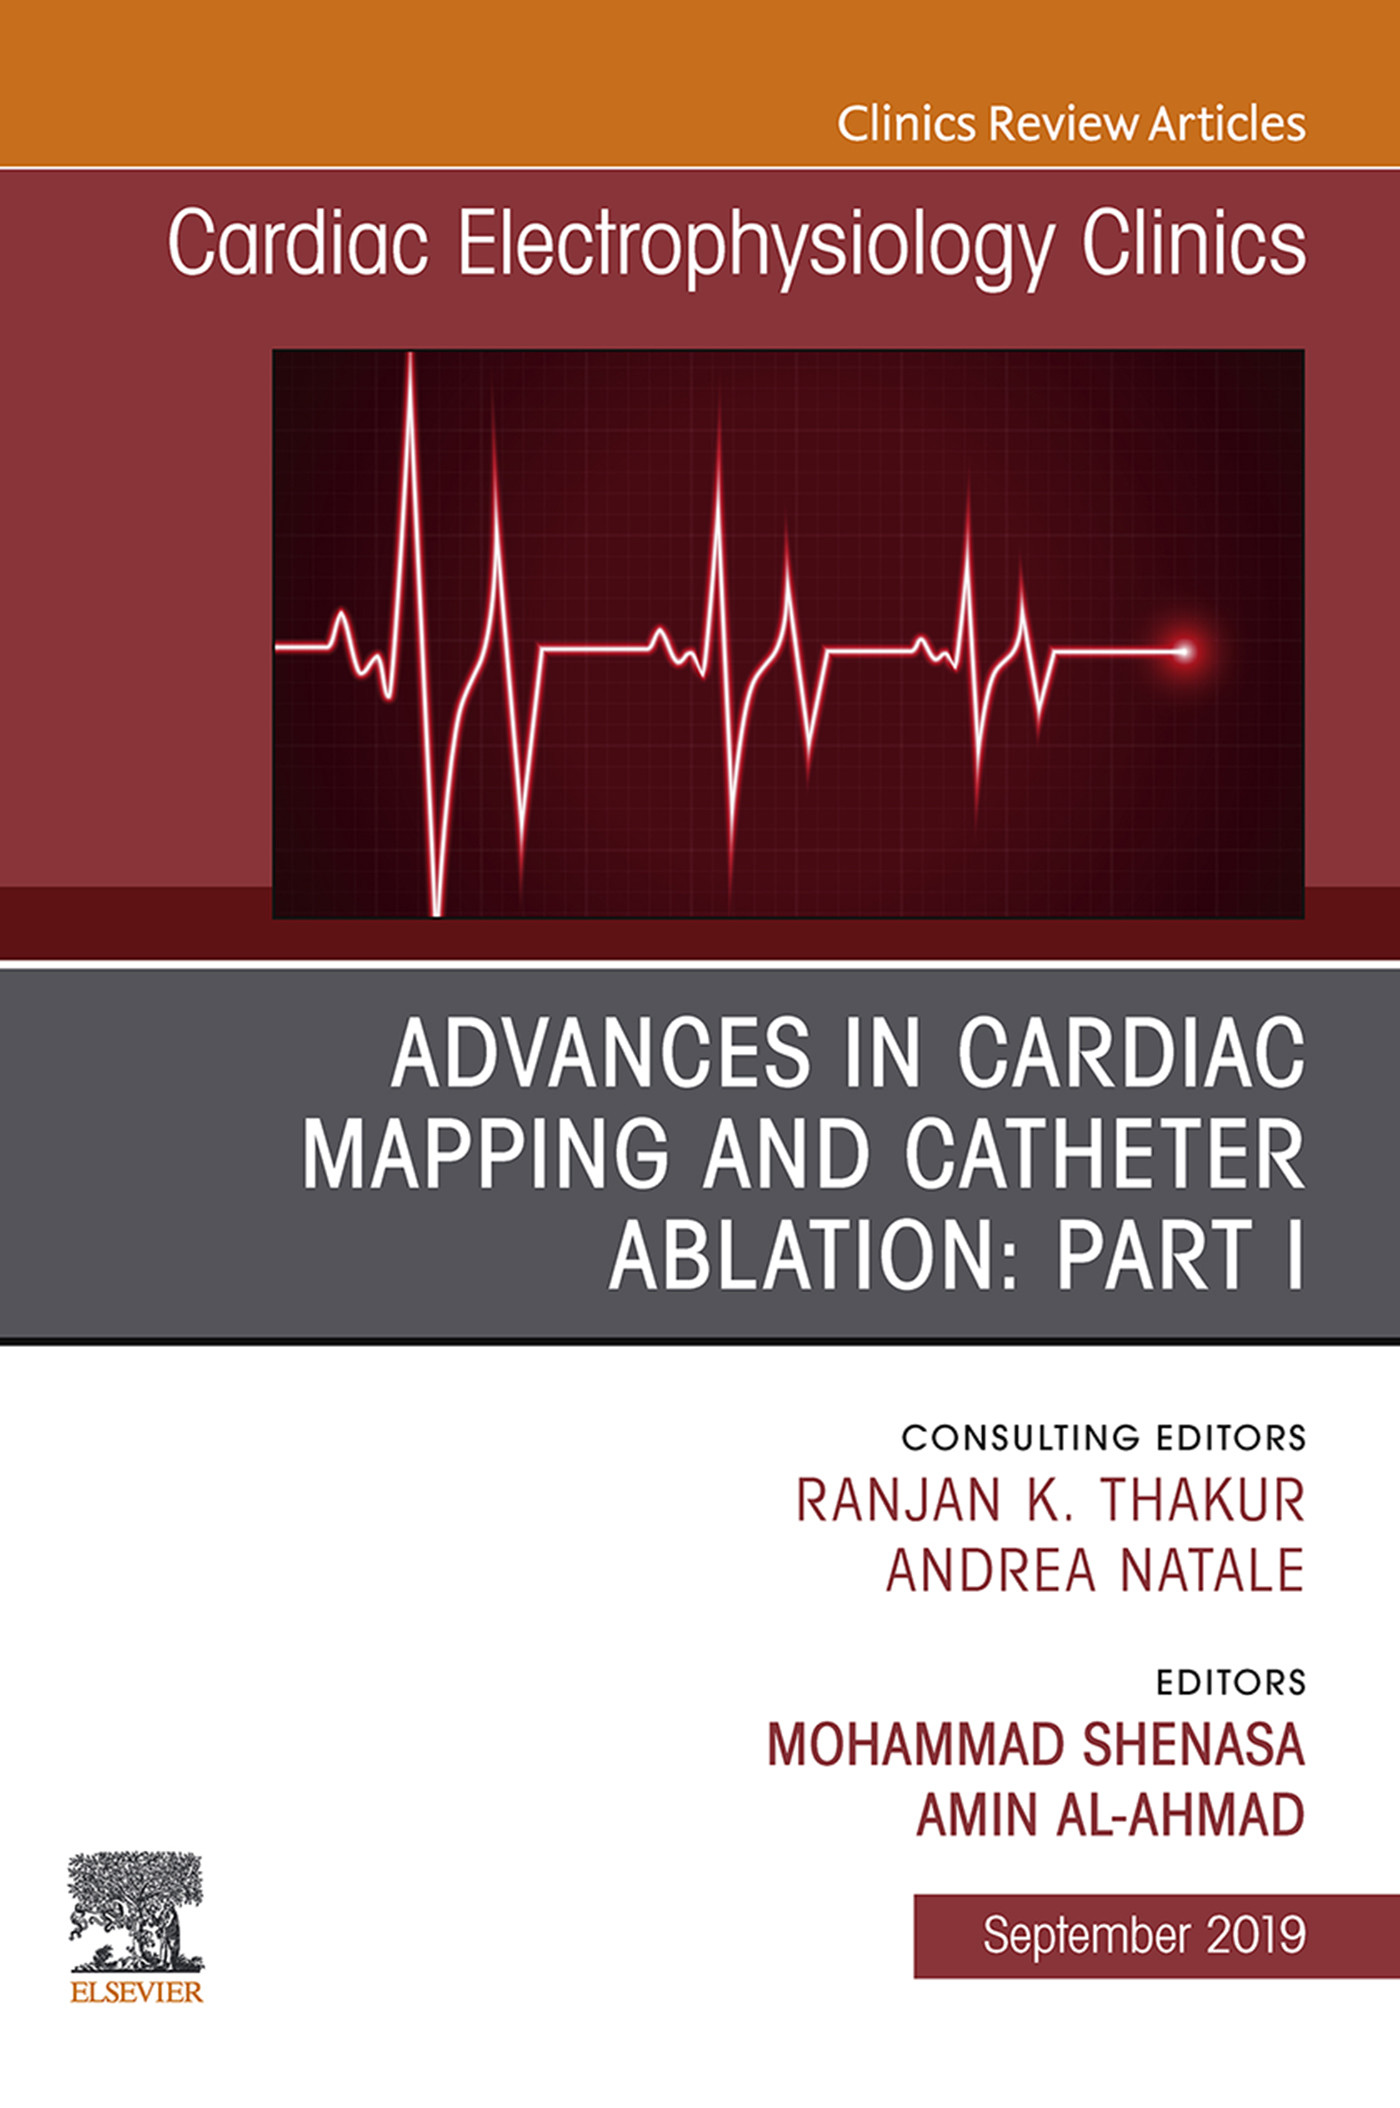 Advances in Cardiac Mapping and Catheter Ablation: Part I, An Issue of Cardiac Electrophysiology Clinics, Ebook